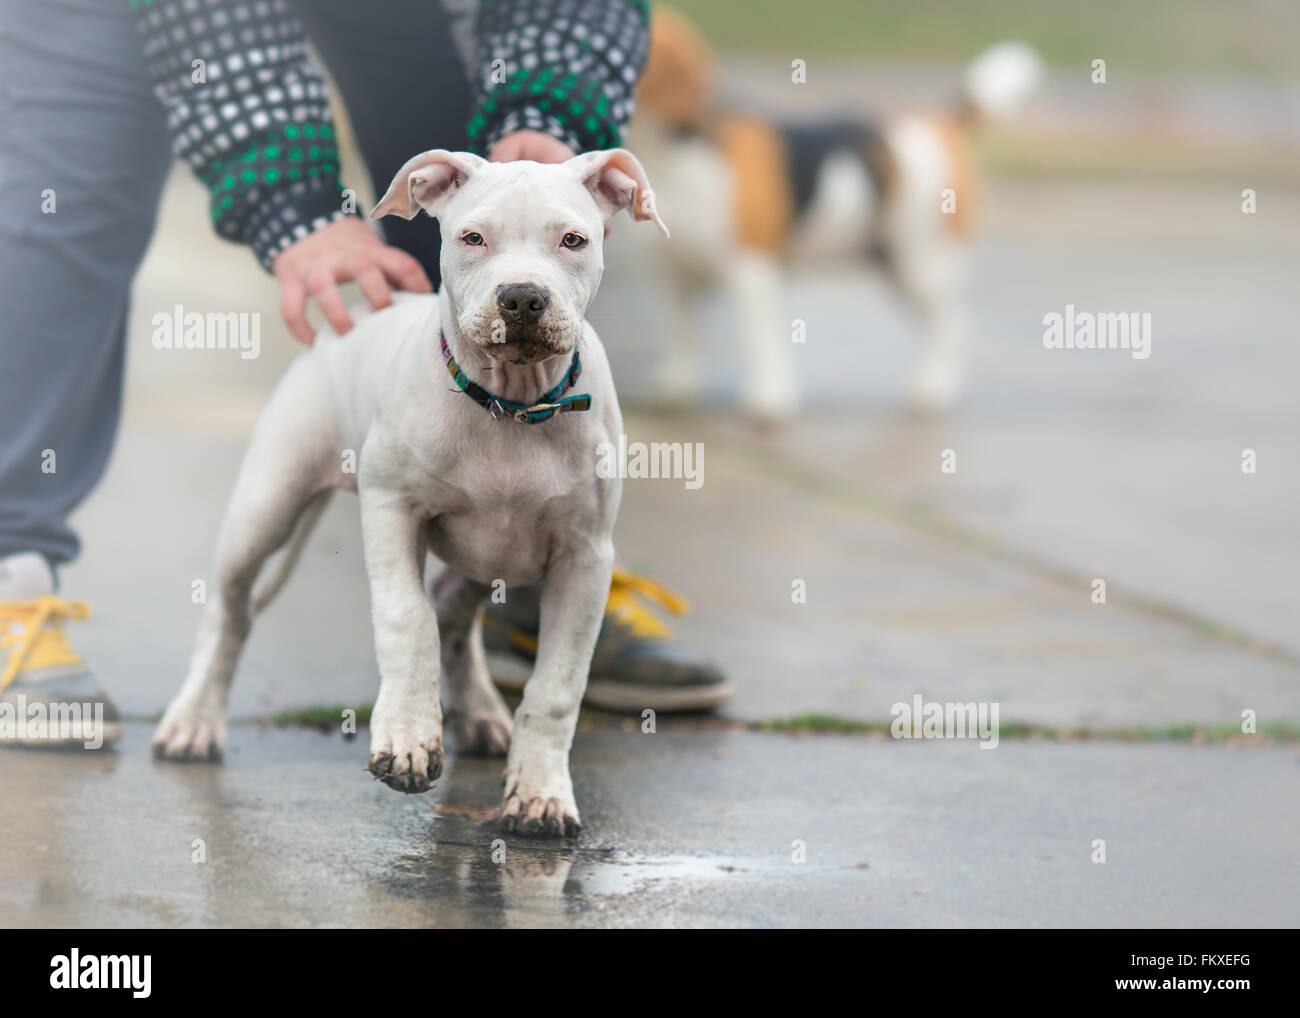 Playing with American staffordshire terrier puppy on rainy day - Stock Image